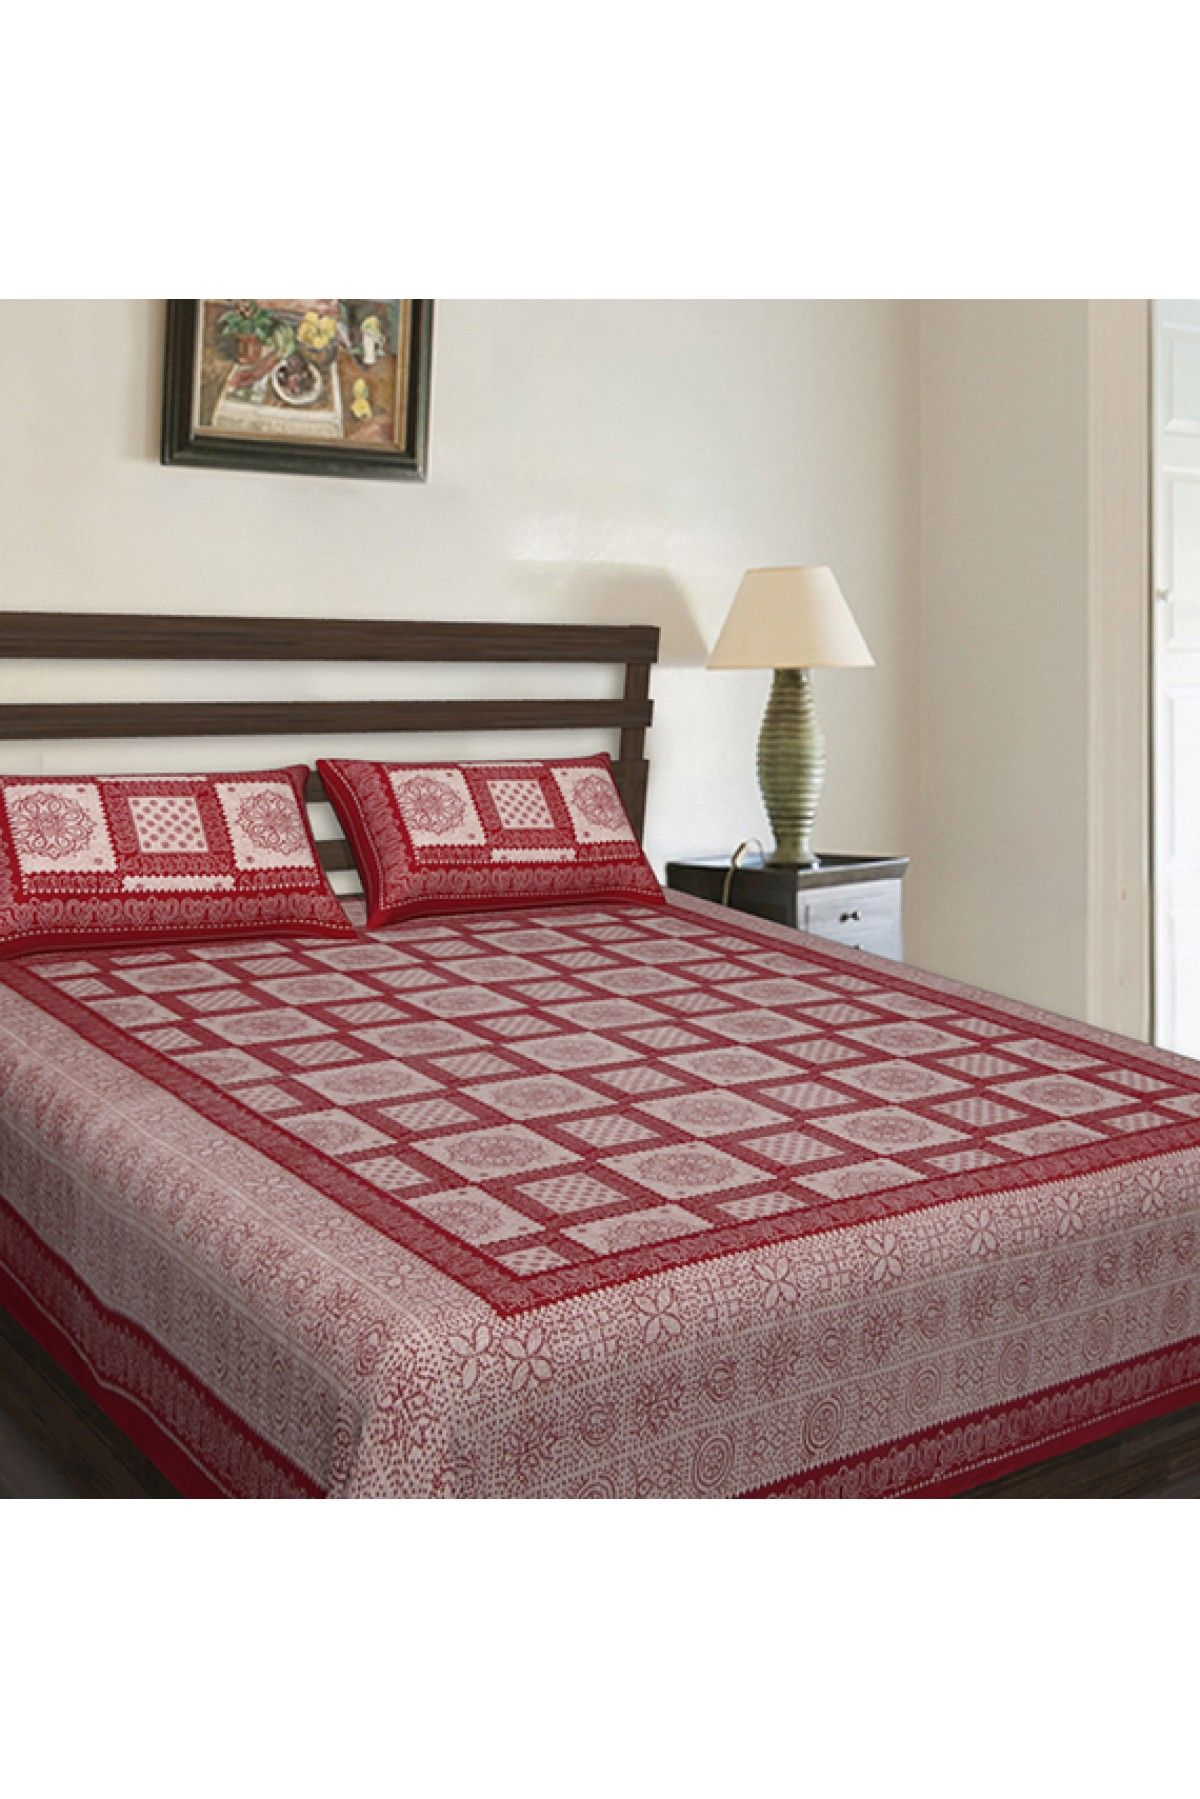 Double Bed Cotton Printed Bedsheet in Maroon Colour.This admiring ...